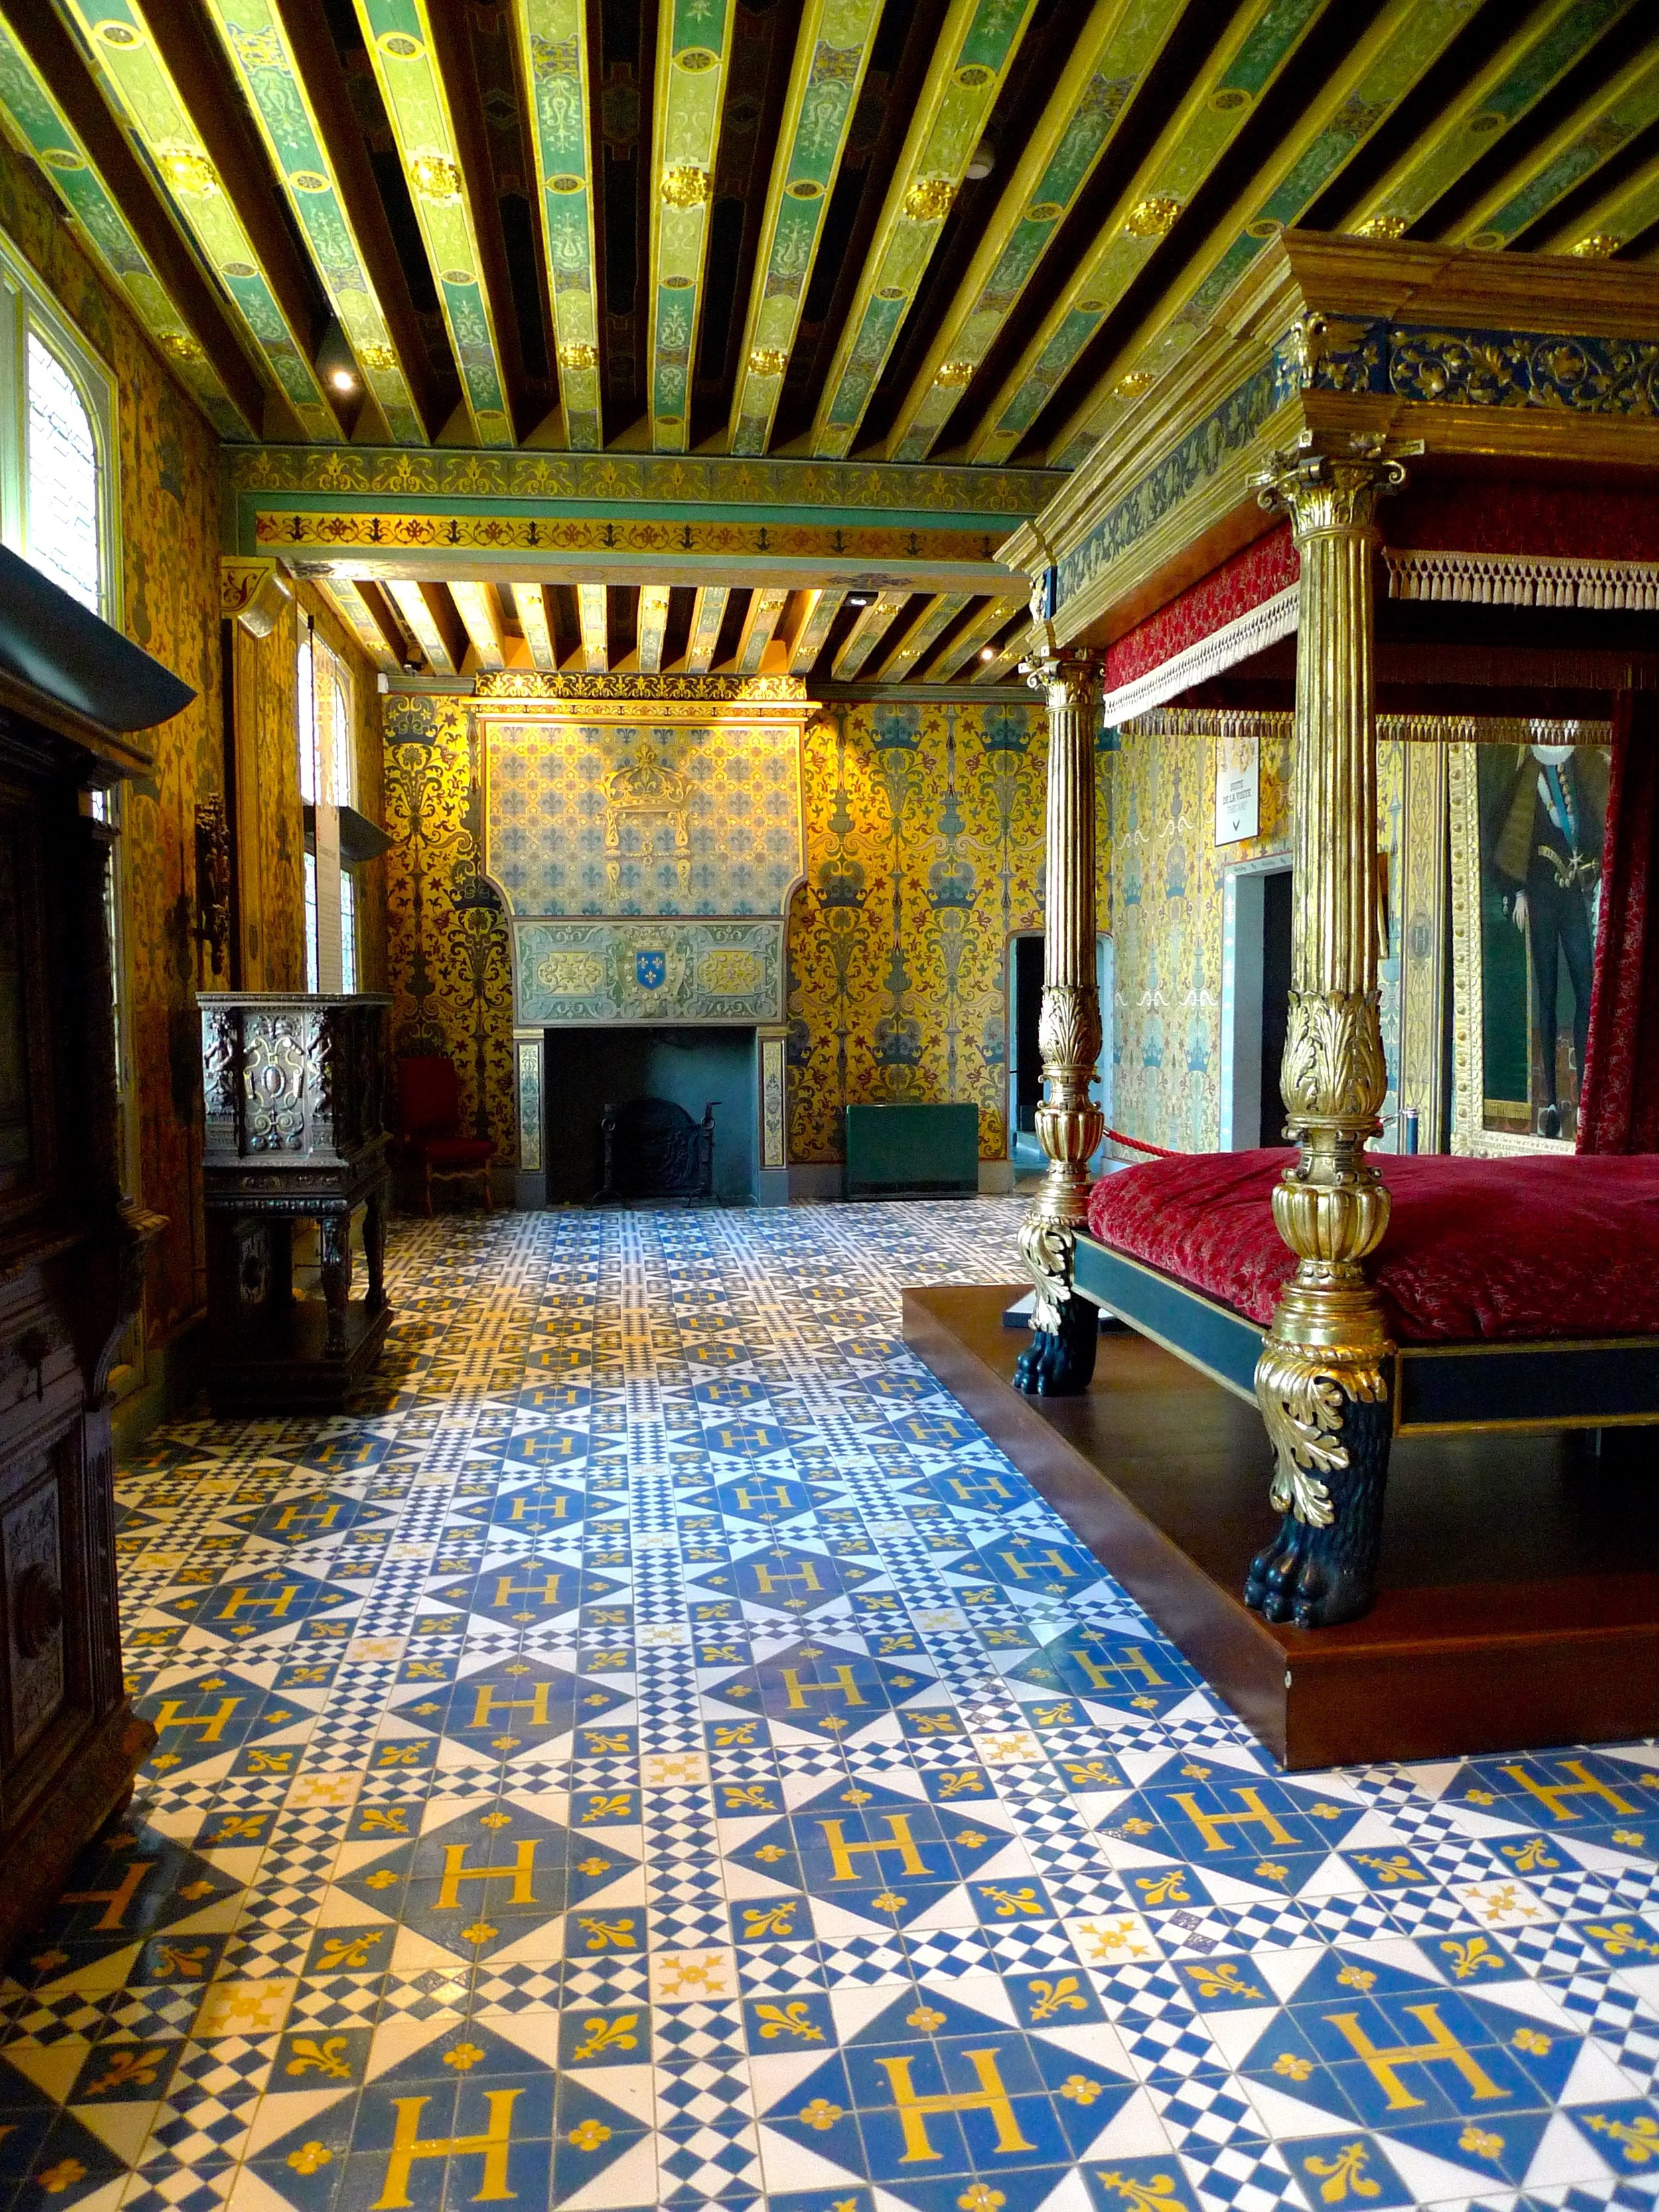 Patterns galore - floor, walls, ceiling and fireplace